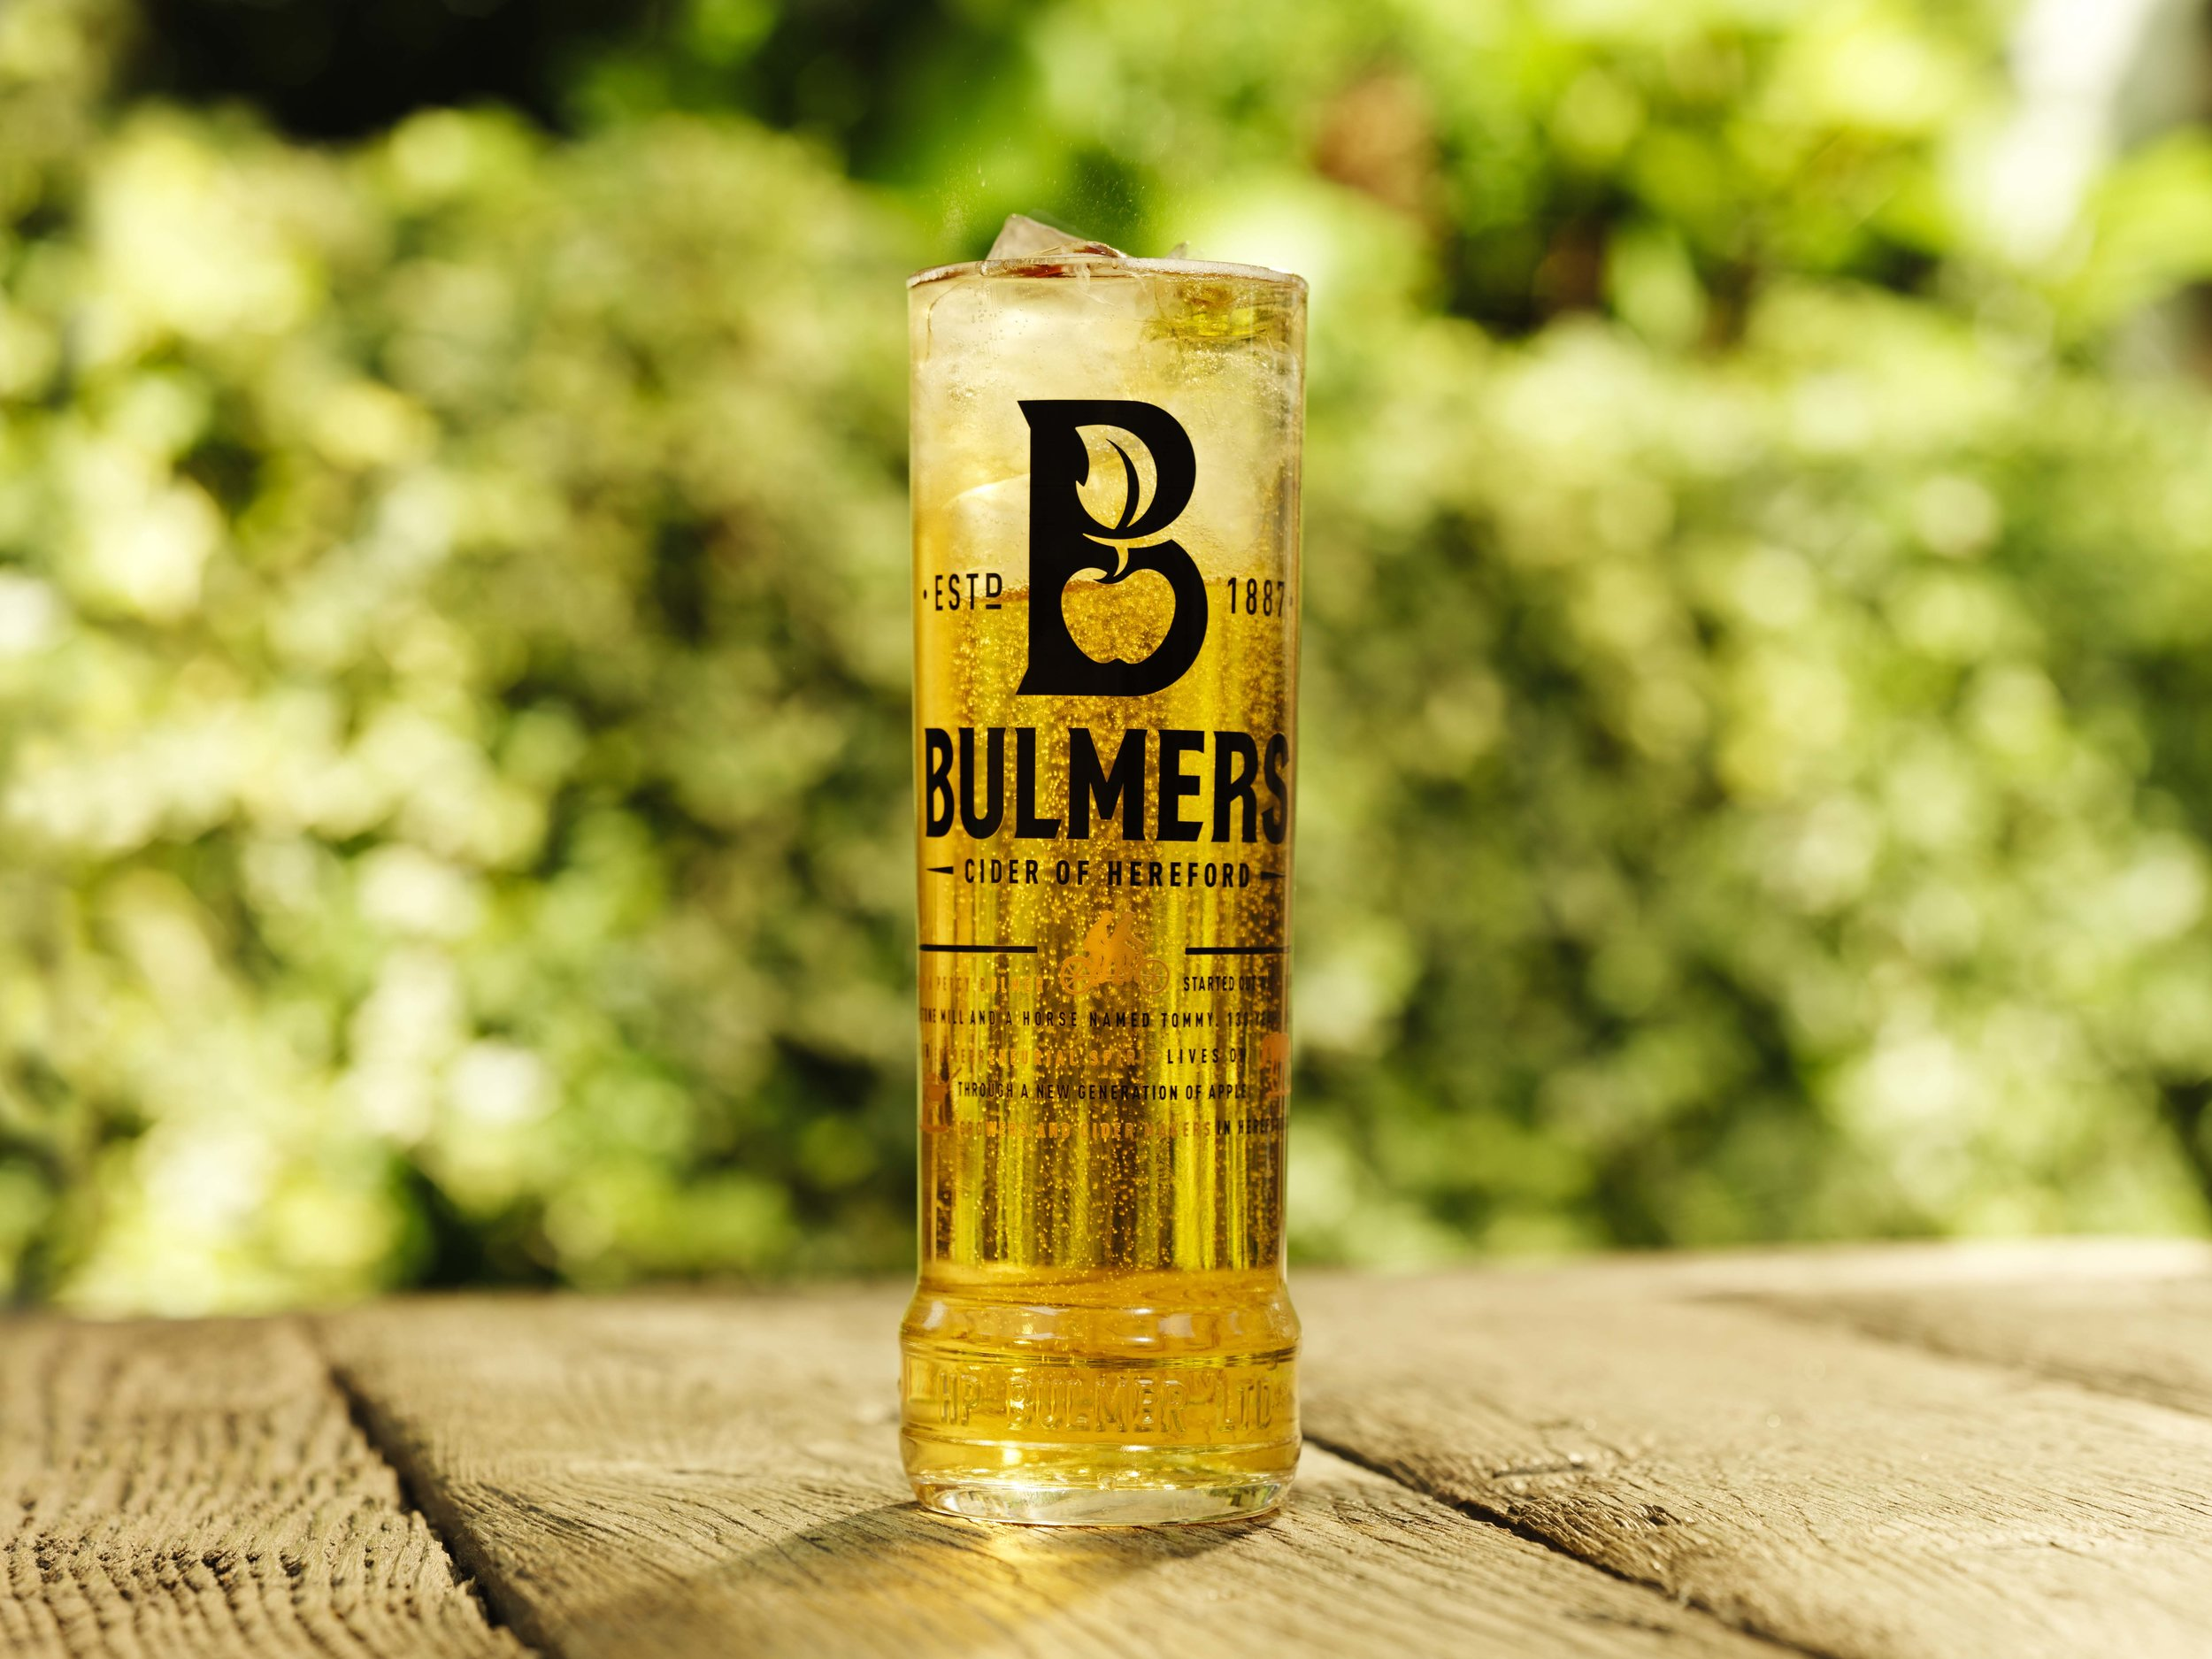 DH&Co-Drinks-Photography-Bulmers-Advertising-Cider-4.jpg